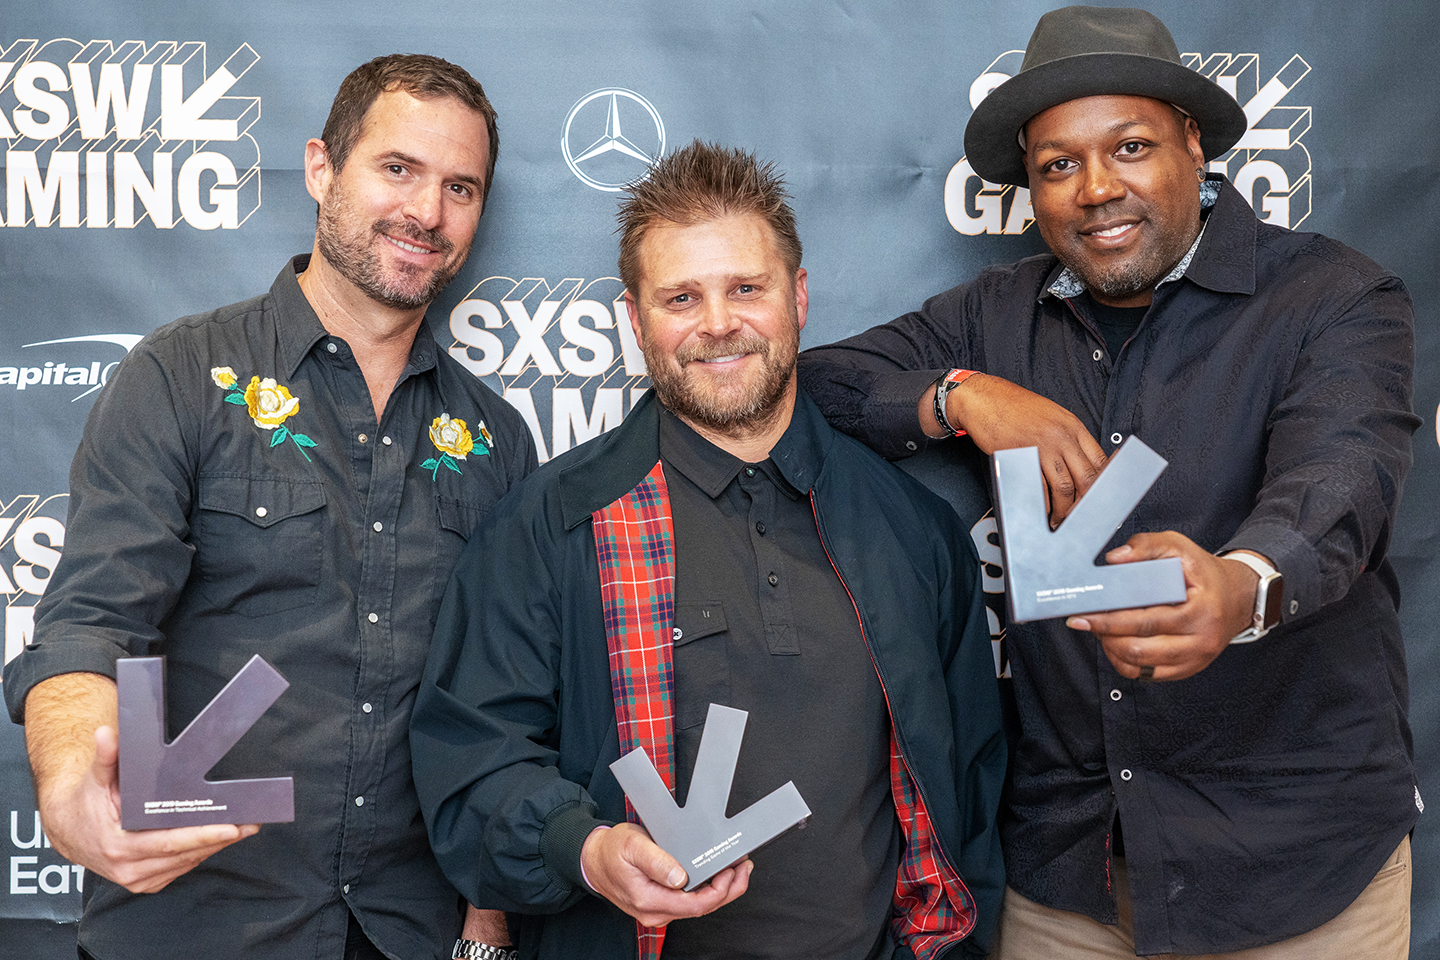 2019 SXSW Gaming Awards – Photo by Stephen Olker